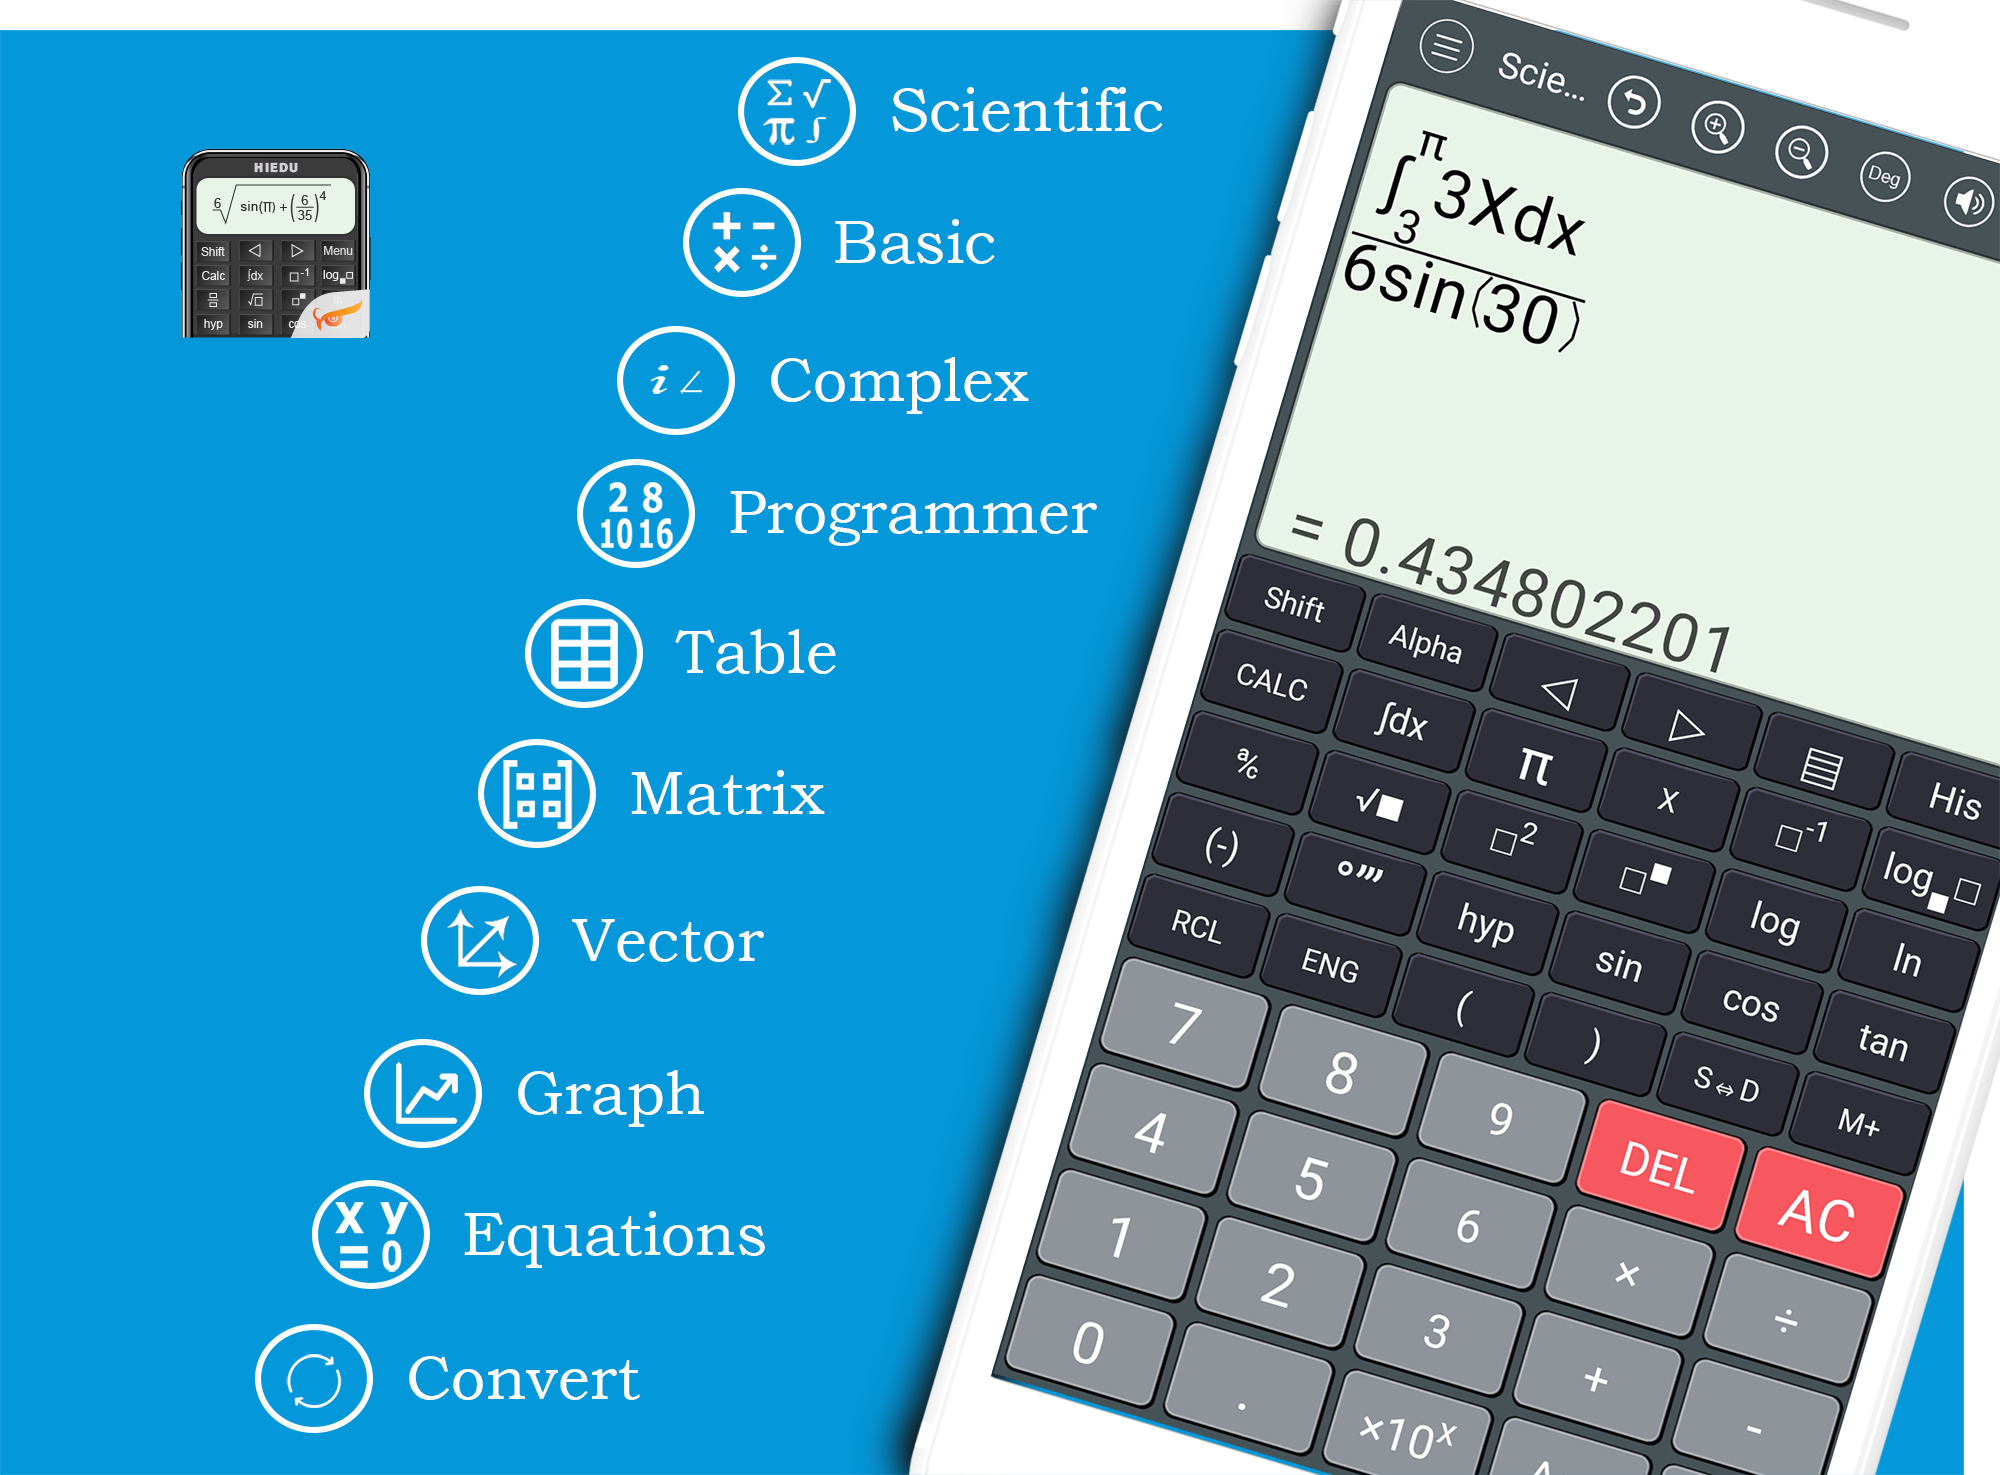 HiEdu Scientific Calculator : He-570 APK 4.0.8 Download for ... on game controller calculator, graphing calculator, orange calculator, pocket calculator, victor 1190 calculator, hand calculator, corvus calculator, solar calculator, desktop calculator, portable calculator, iphone calculator, scientific calculator, computer calculator, margin markup calculator, victor 1530-6 calculator, 80085 on a calculator, date and time calculator, google calculator, online calculator,